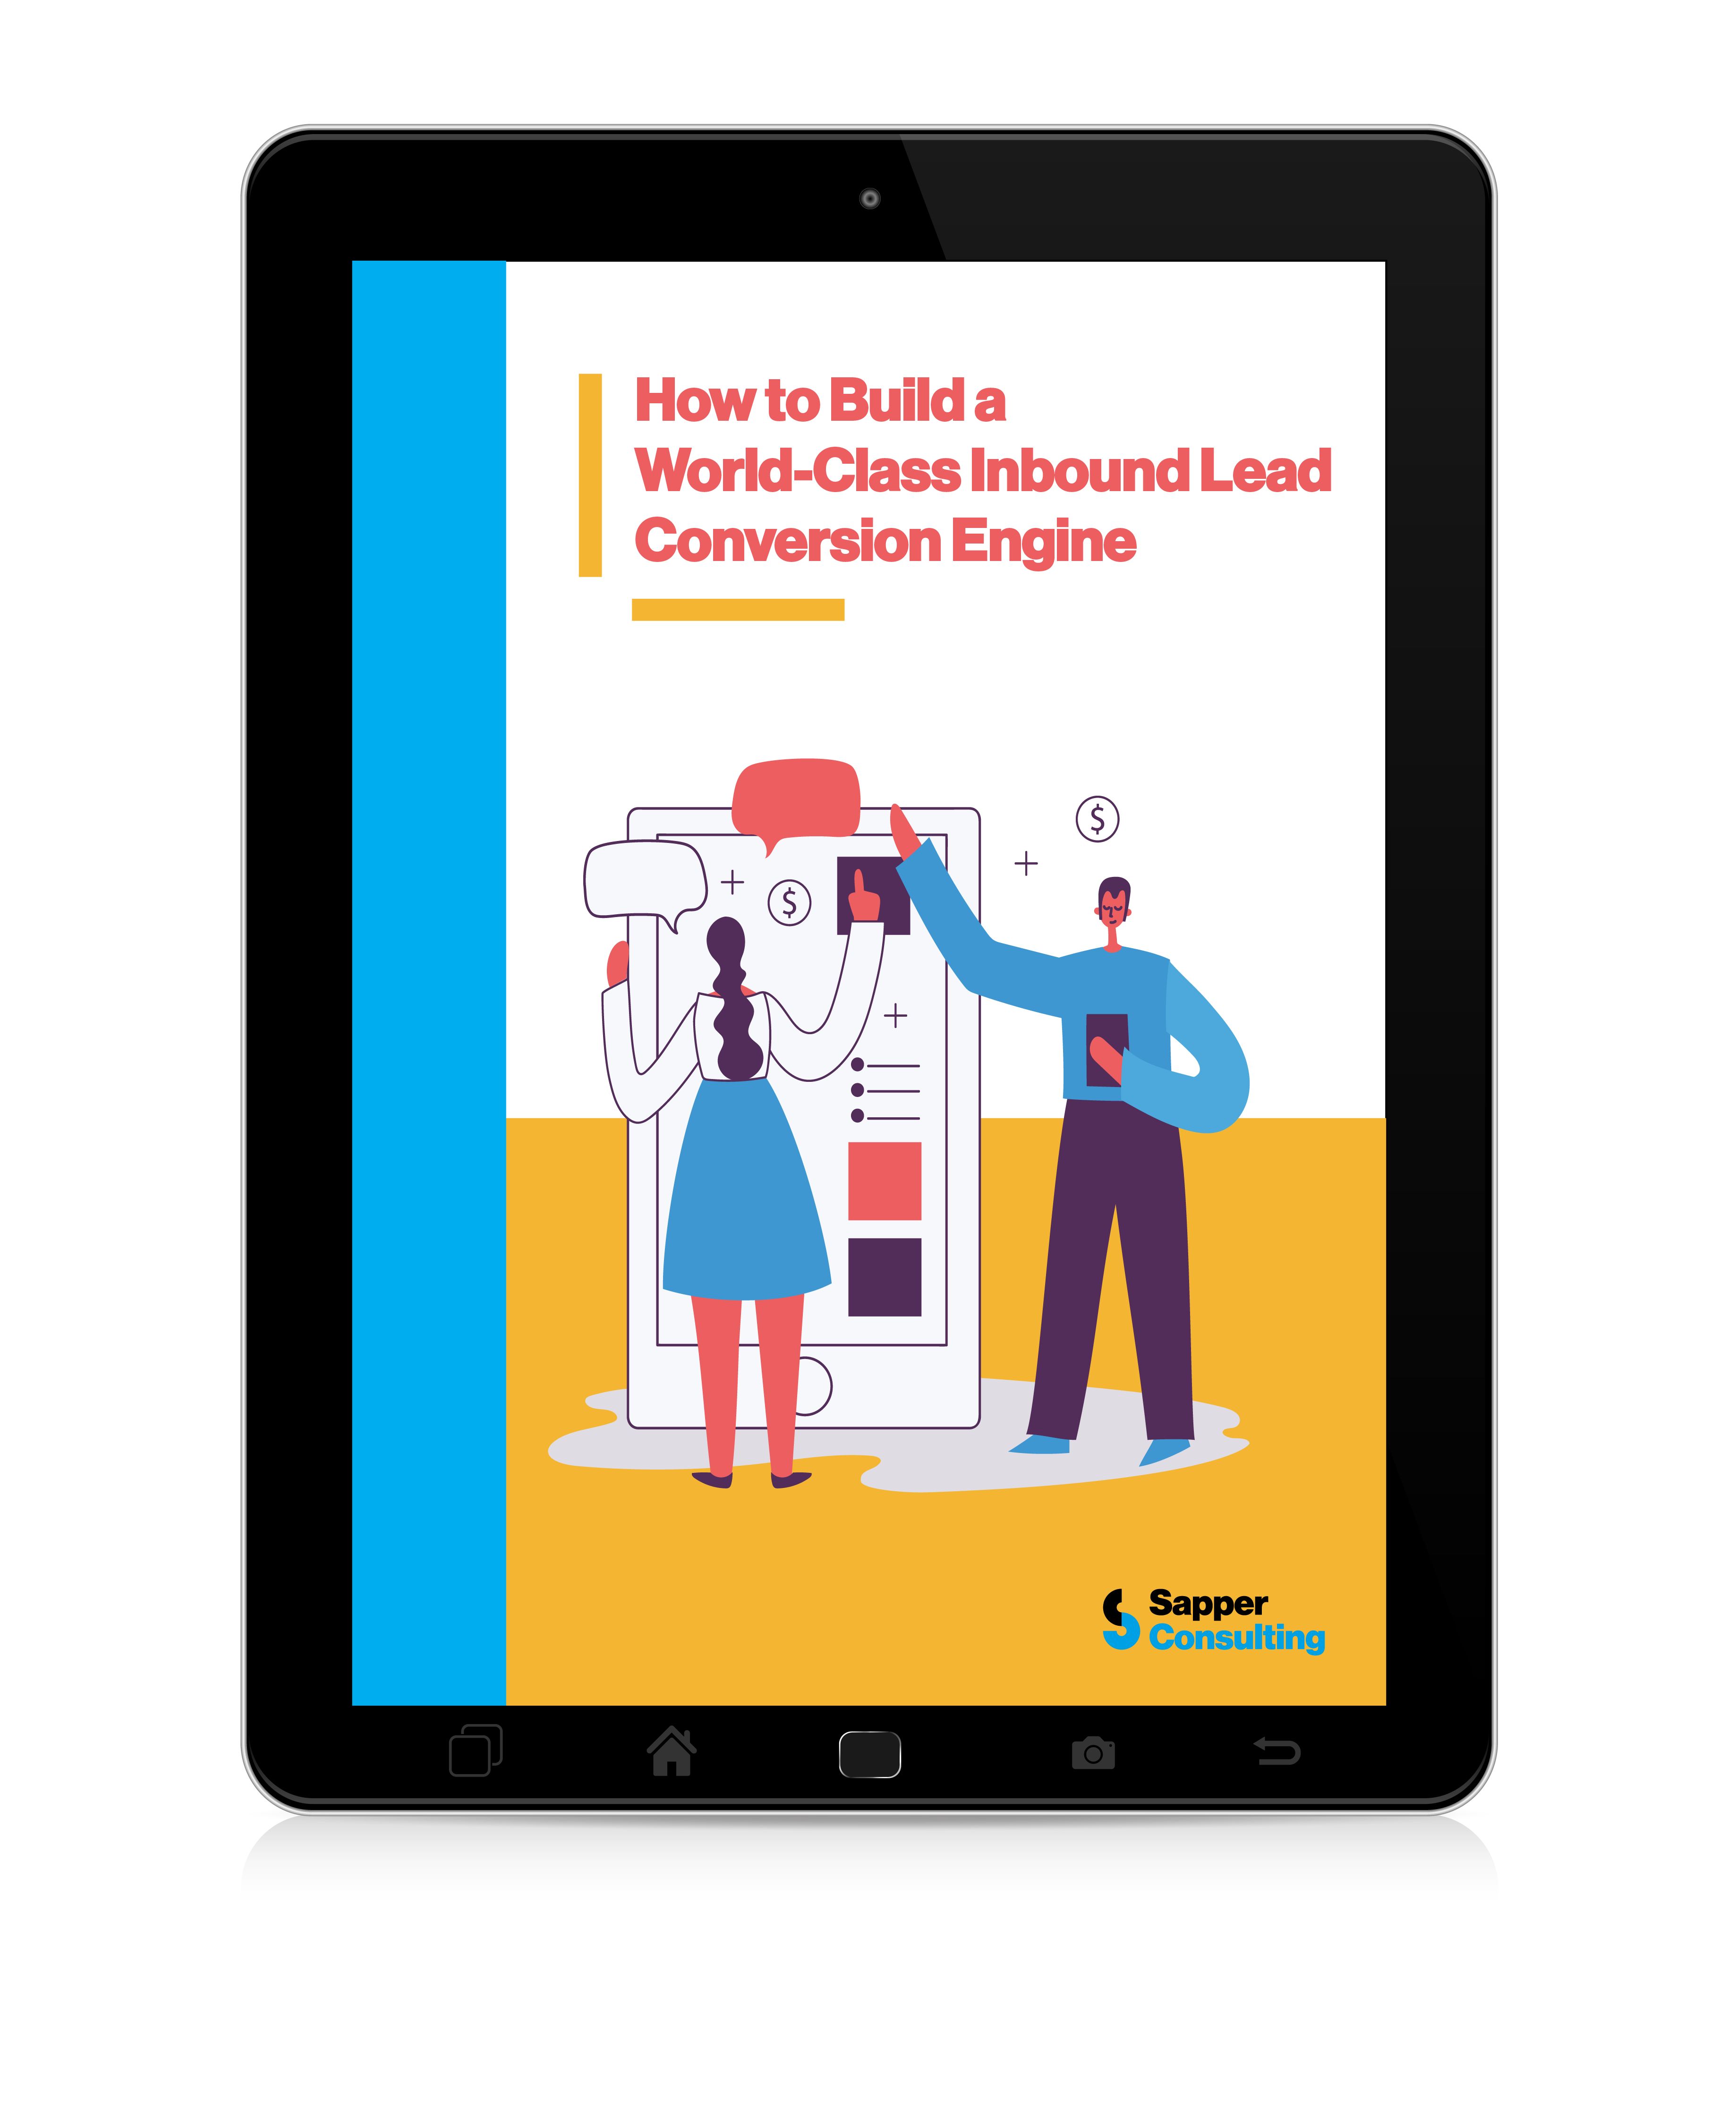 How to Build a World-Class Inbound Lead Conversion Engine